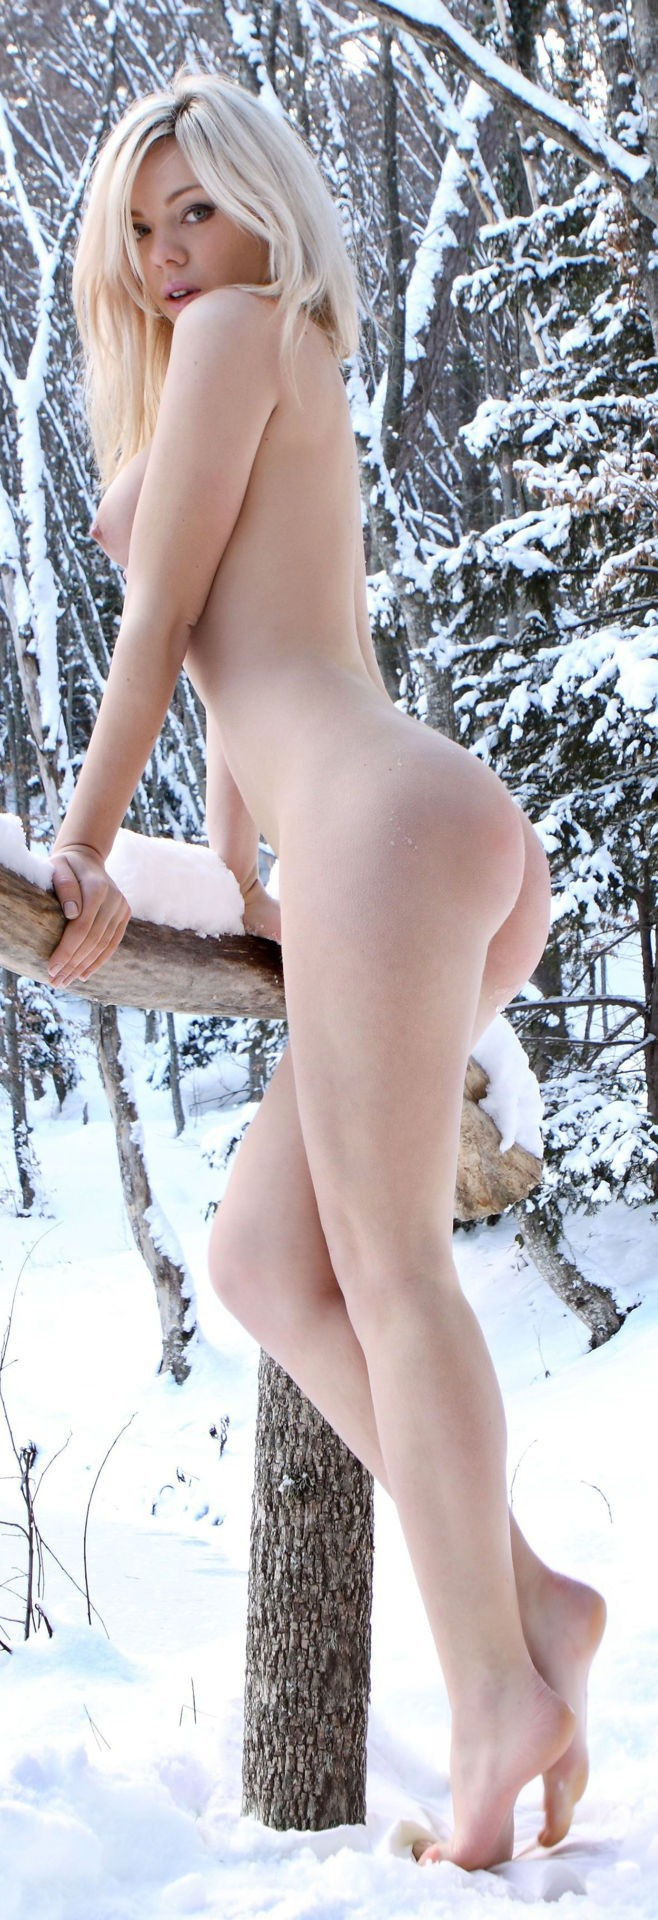 escort tjejer i sverige gratis porr svenska #DominicaC -#butterfly #tender #moist #pussy #D_Formation #landscape #wideopenlegs #shaved #airstrip #butts #ass #sexy #pose